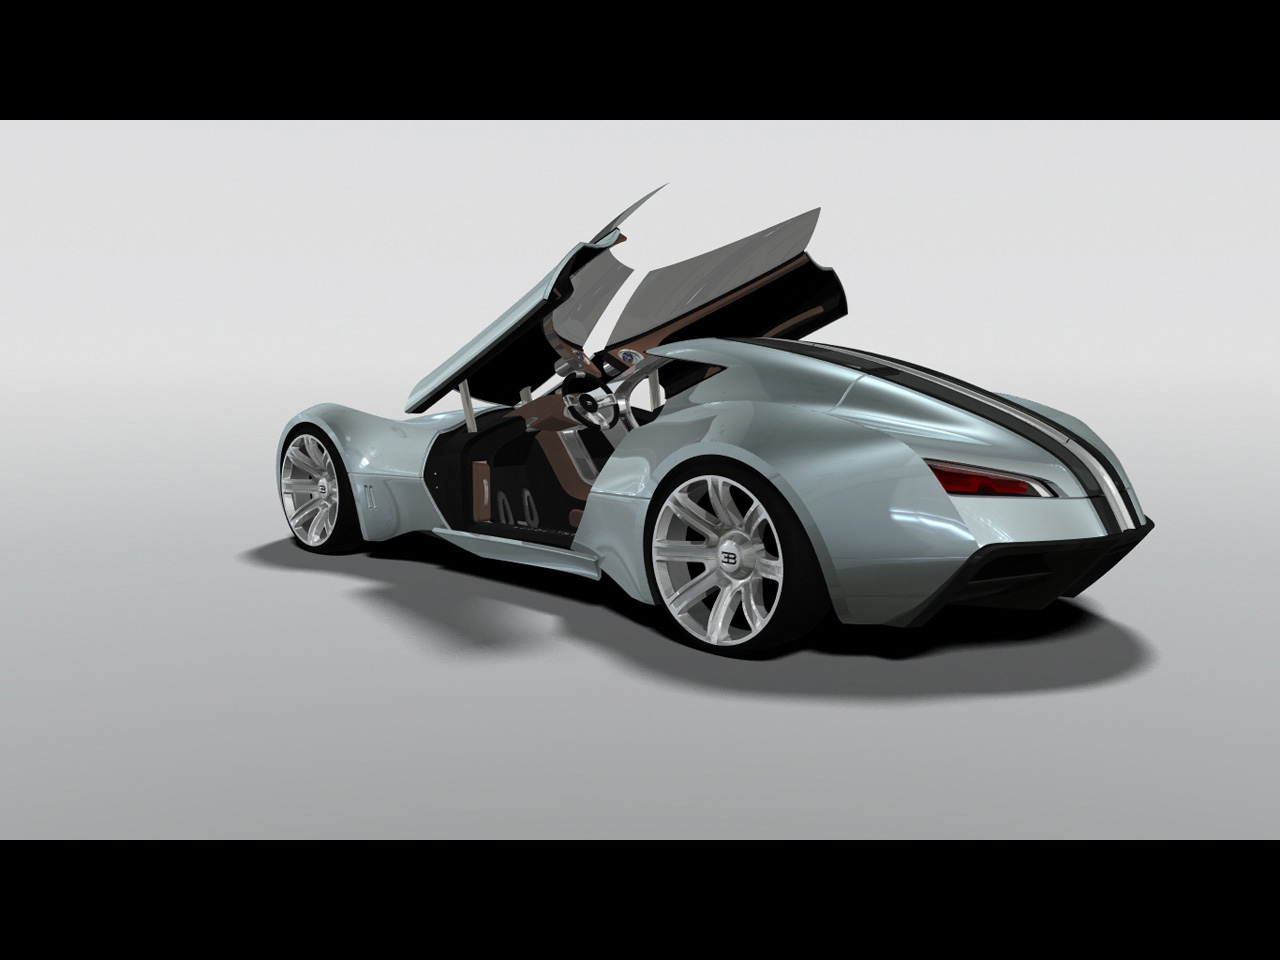 future Bugatti Aerolithe Concept Design by Douglas Hogg Rear And Side Steering Column Raised Free Download Image Wallpaper